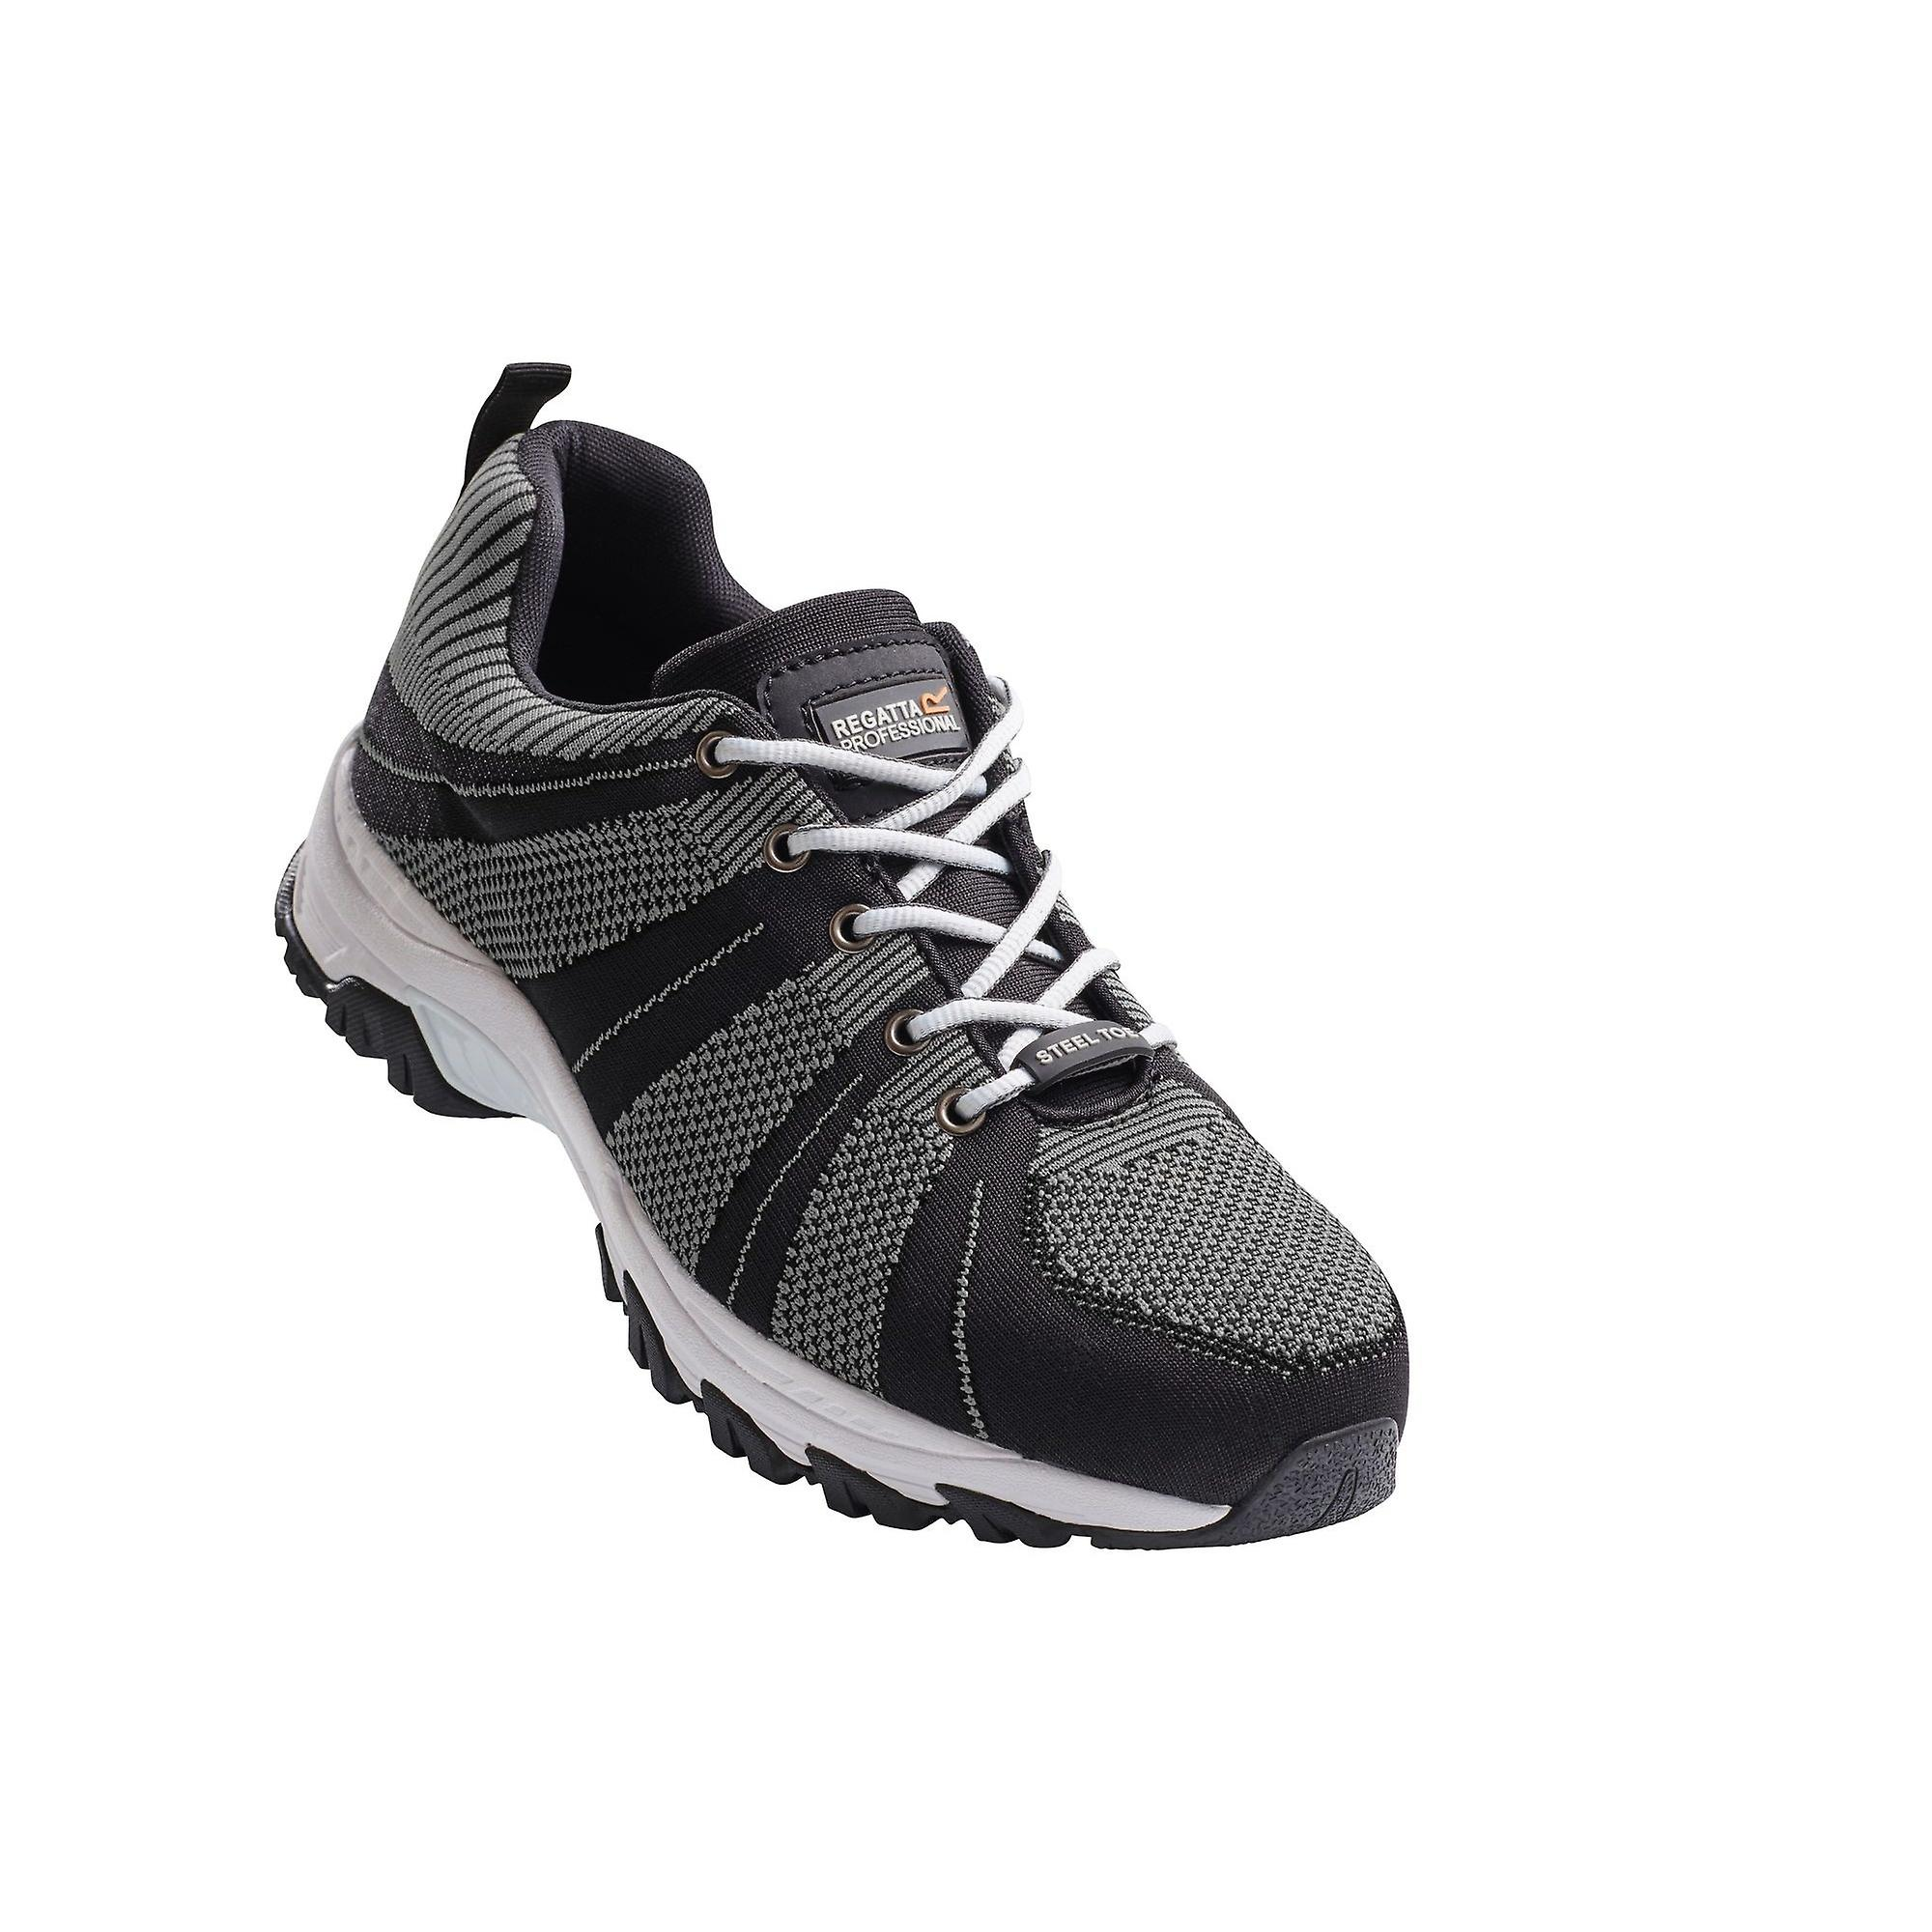 Regatta Hardwear Mens Rapide Knit Wide Fitting Safety Trainers